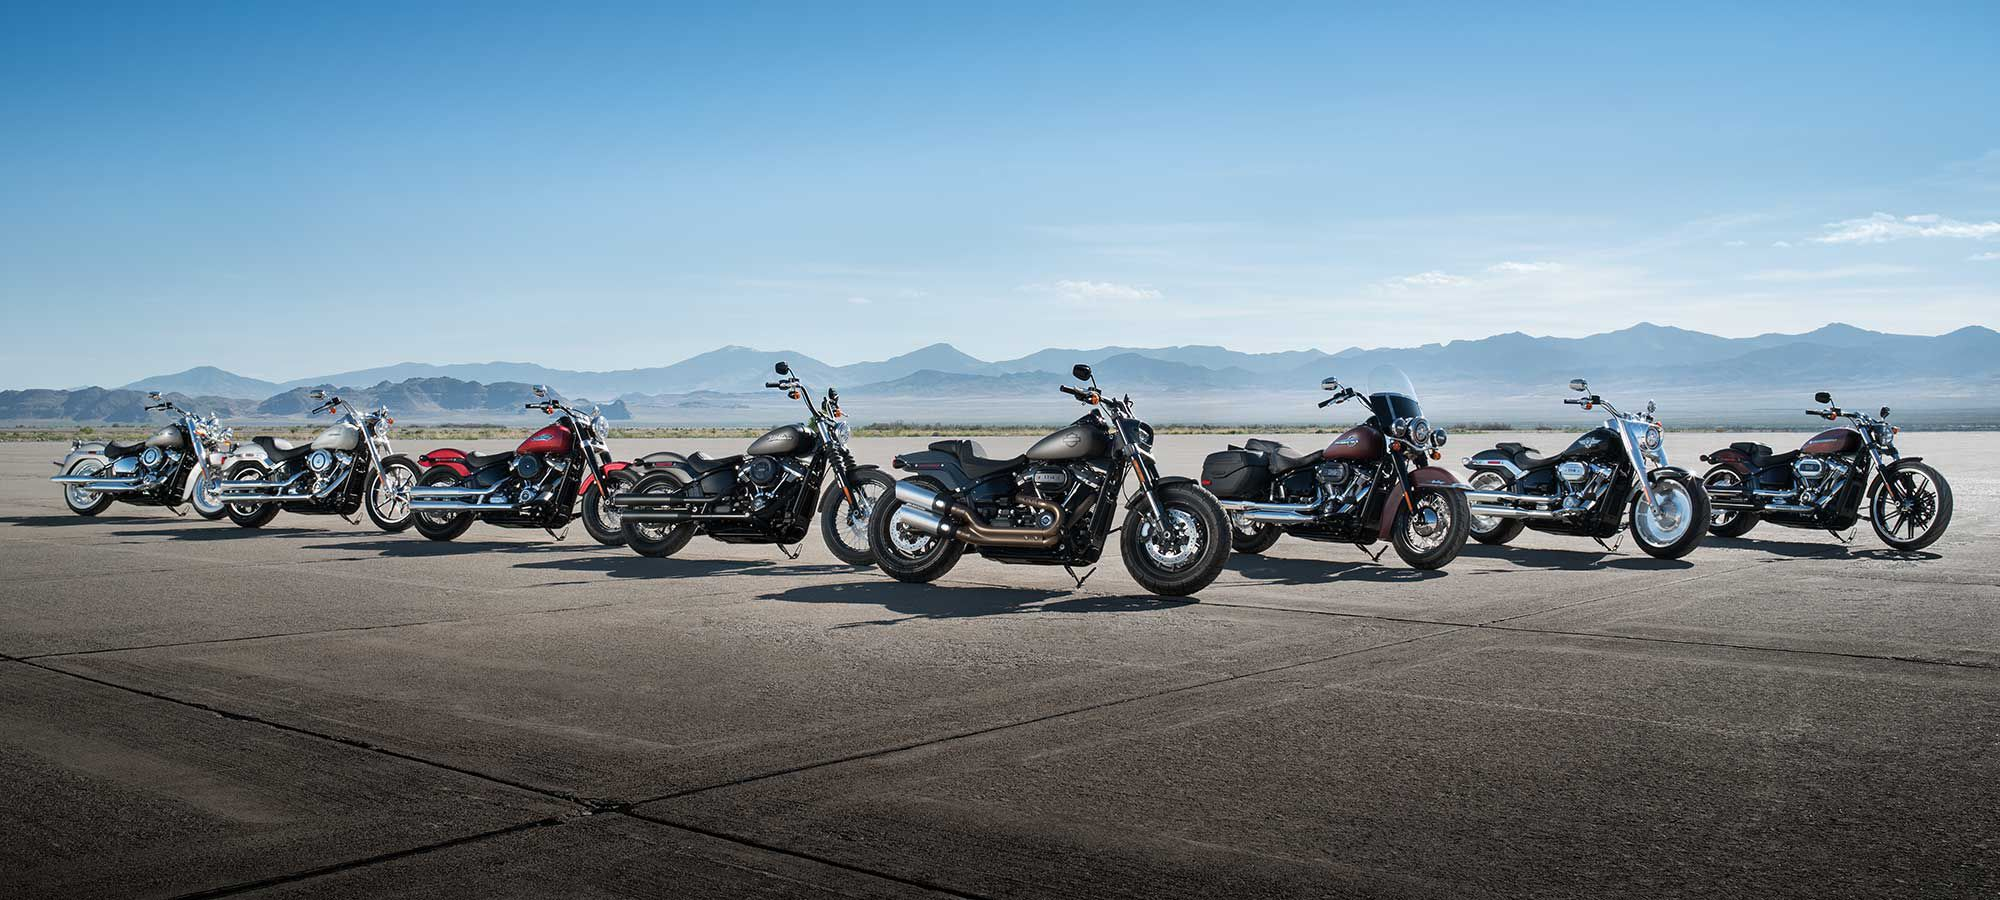 harley-davidson motorcycles lined up